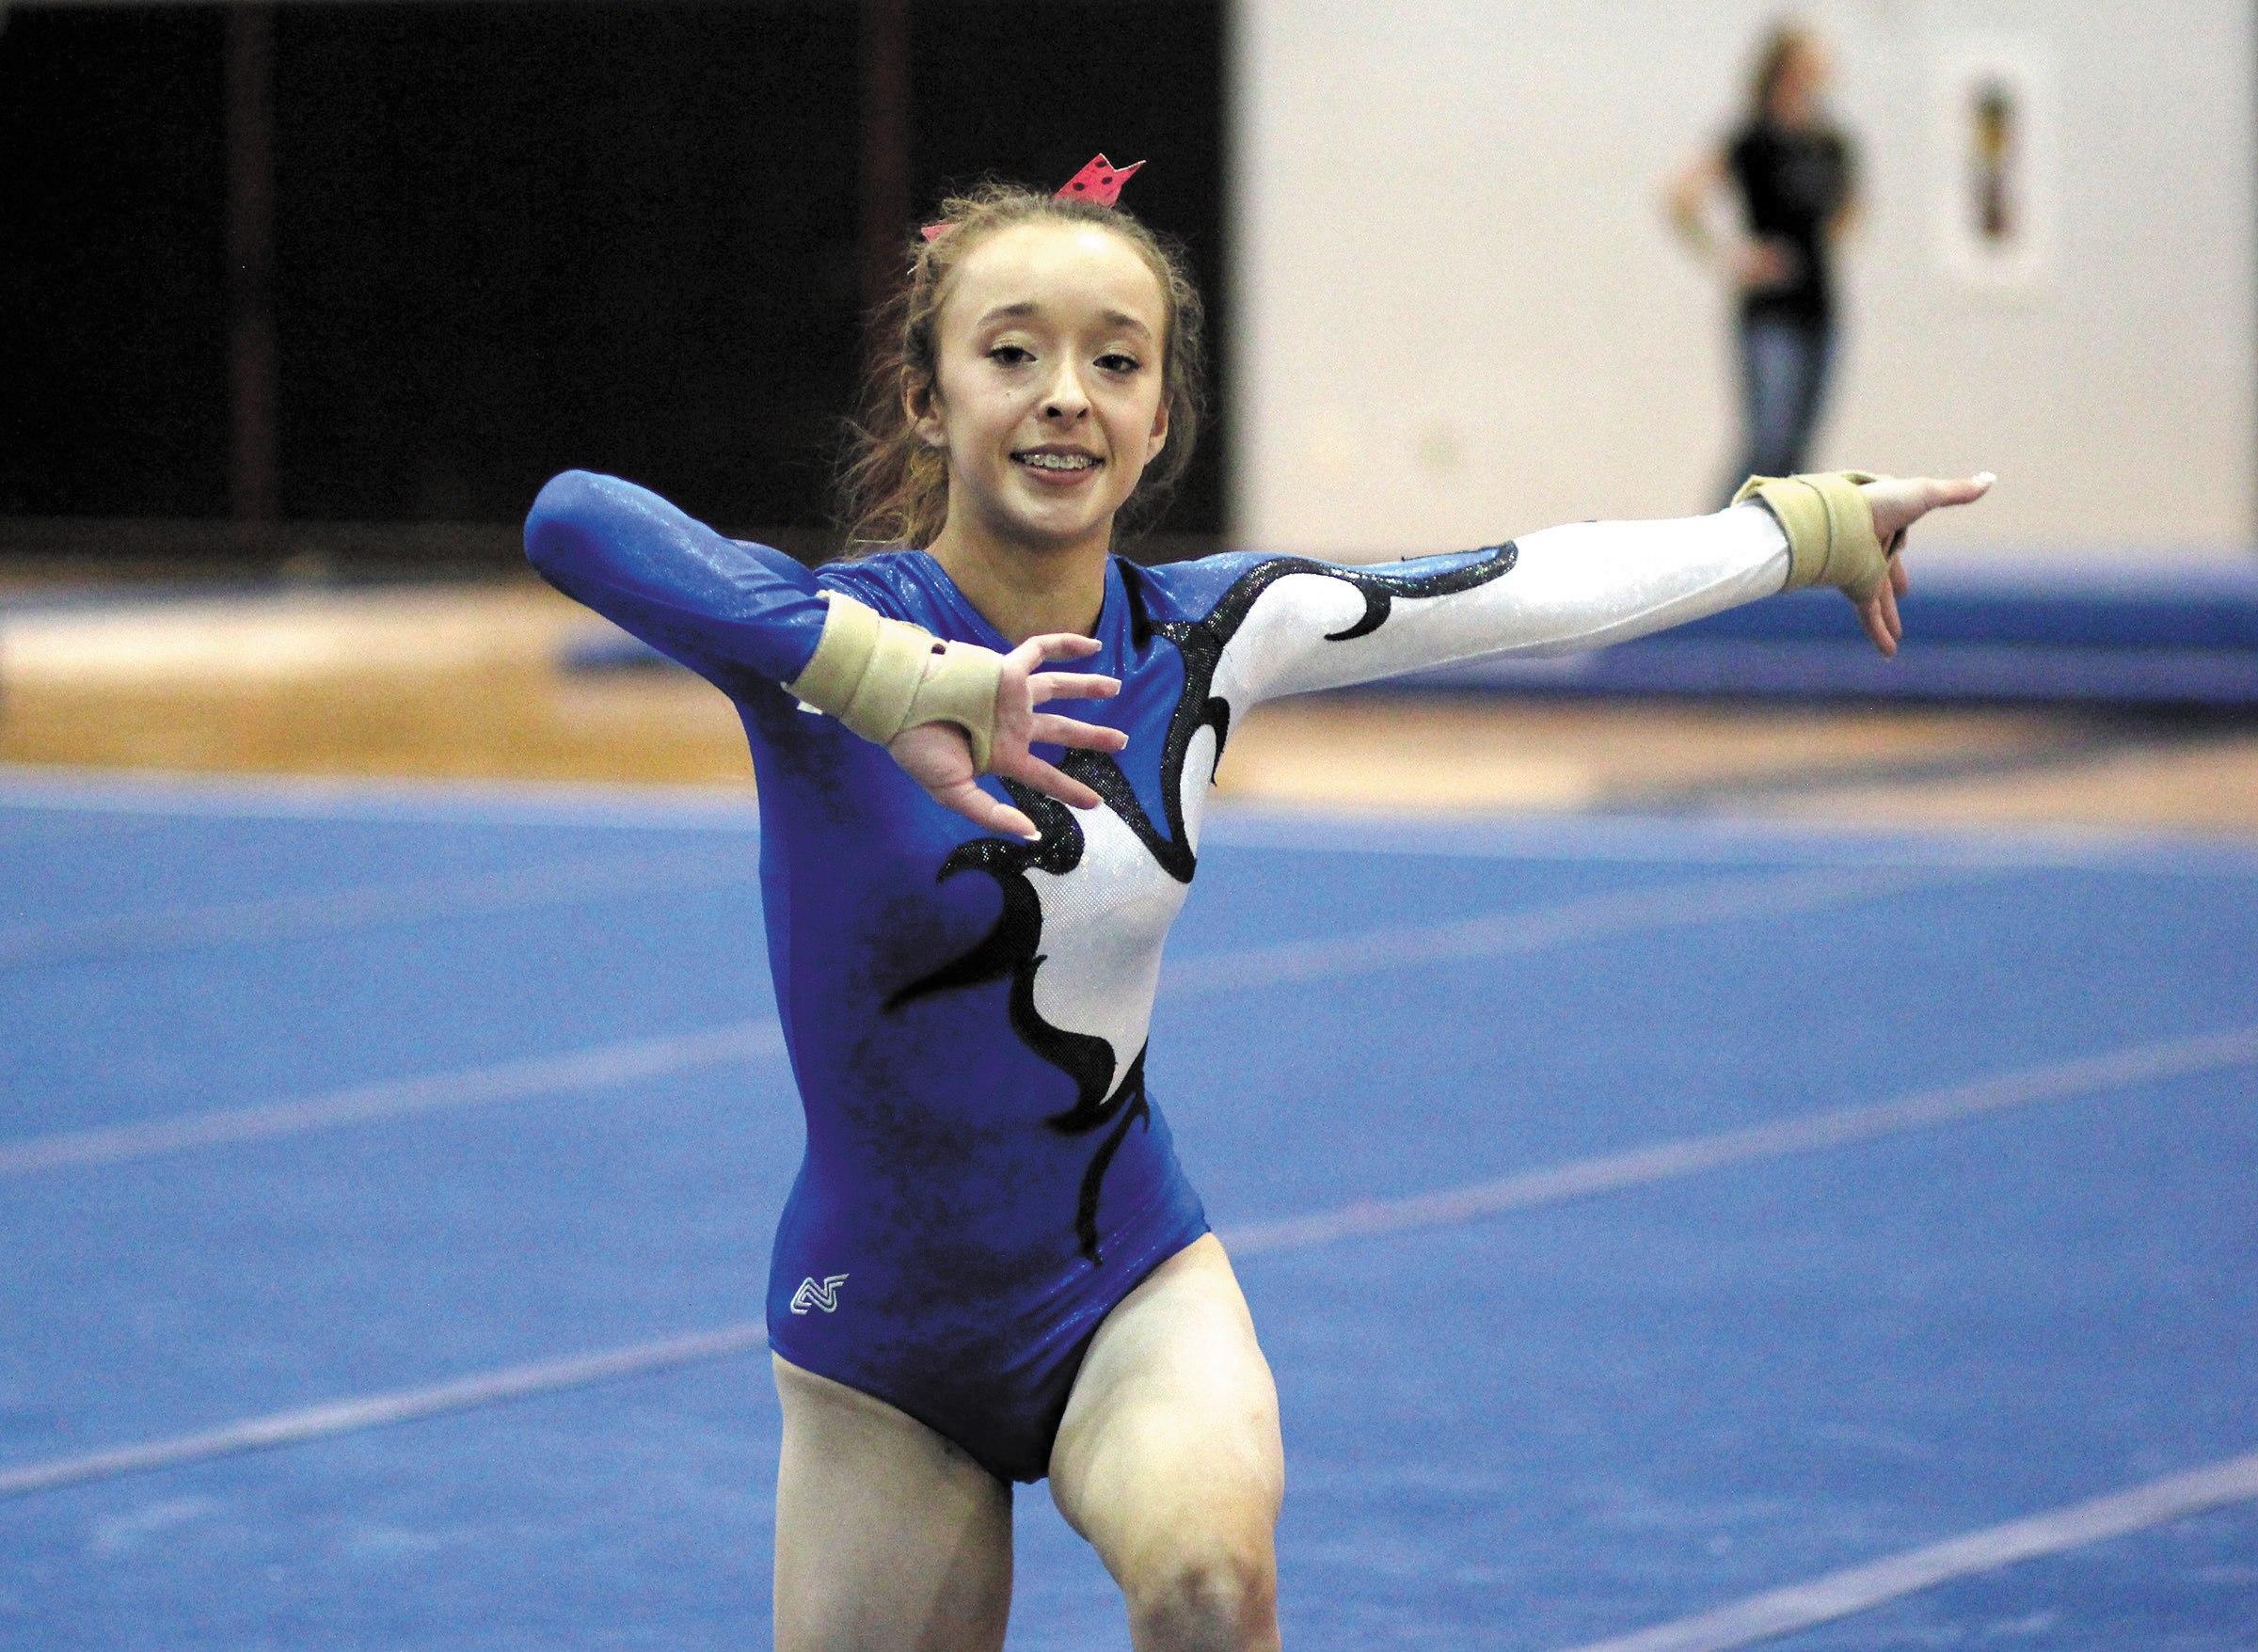 nashville night gymnastics meet